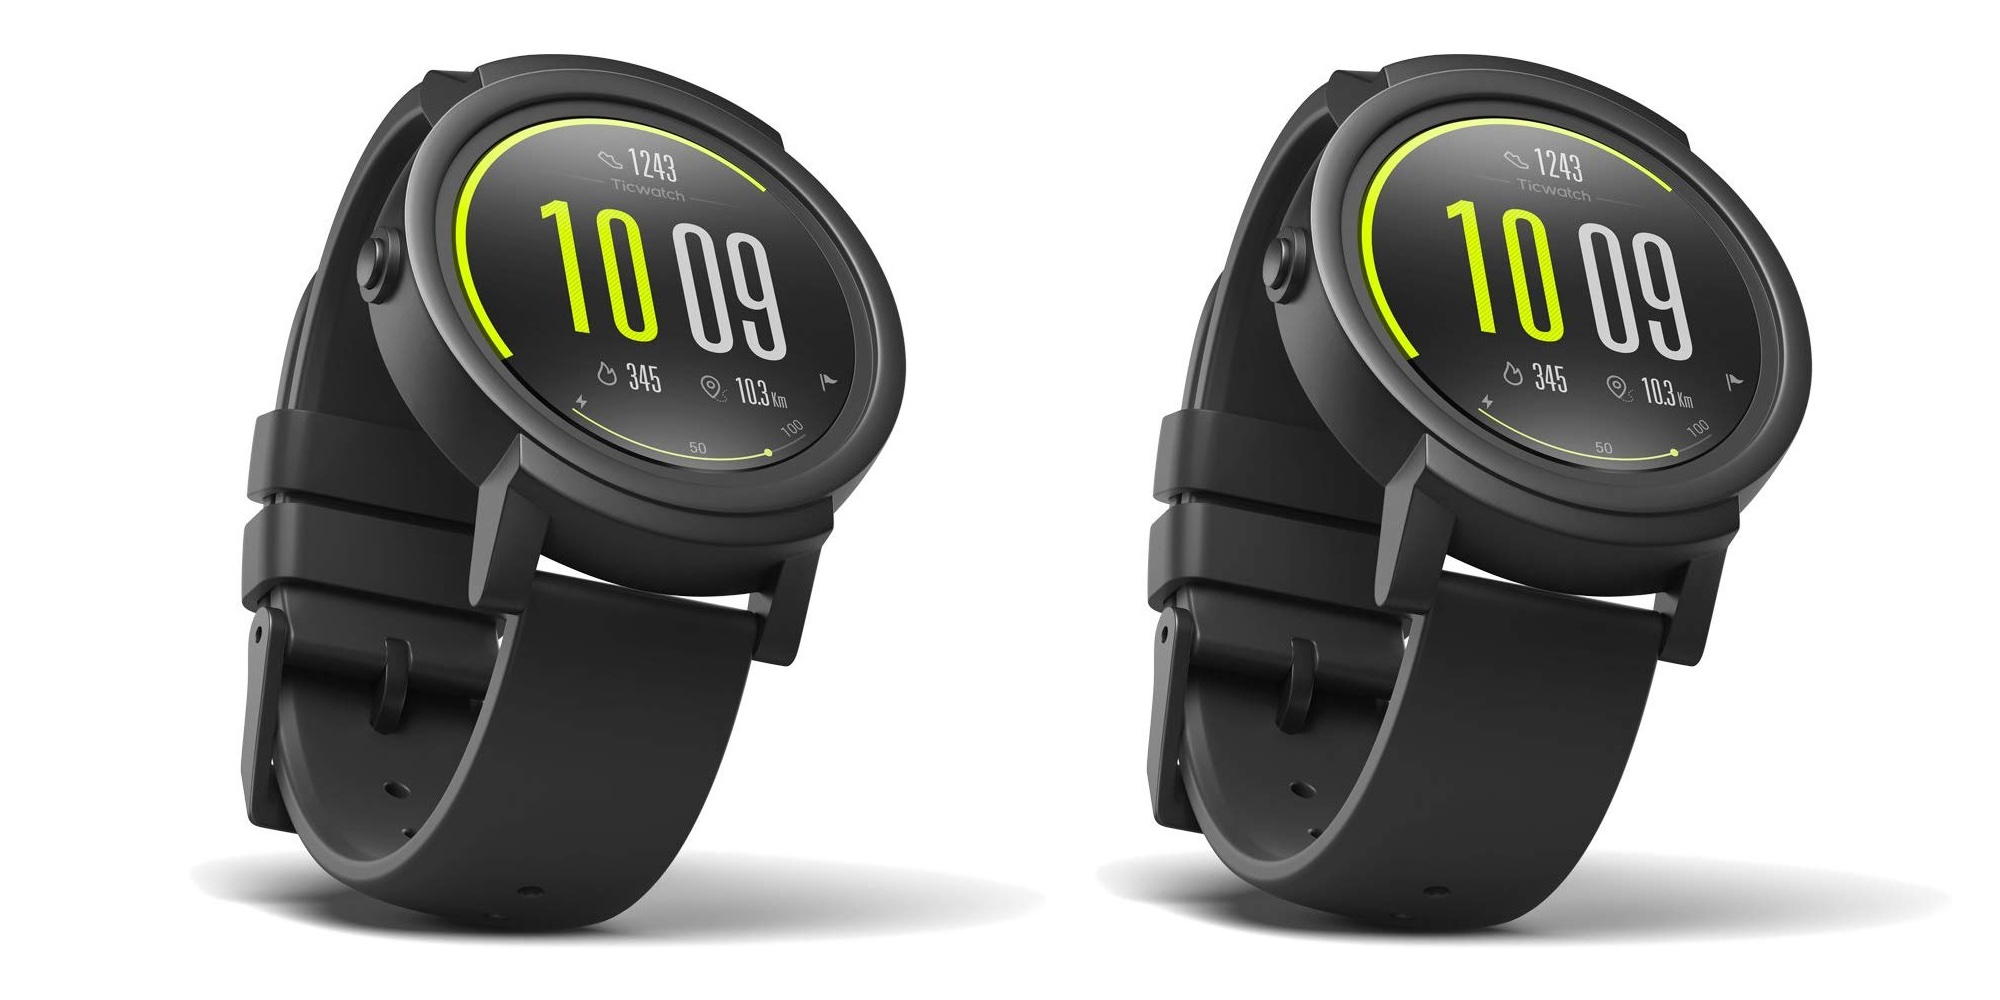 Enjoy Assistant on your wrist with Ticwatch E Smartwatch at $100 (Reg.  $130) - 9to5Toys